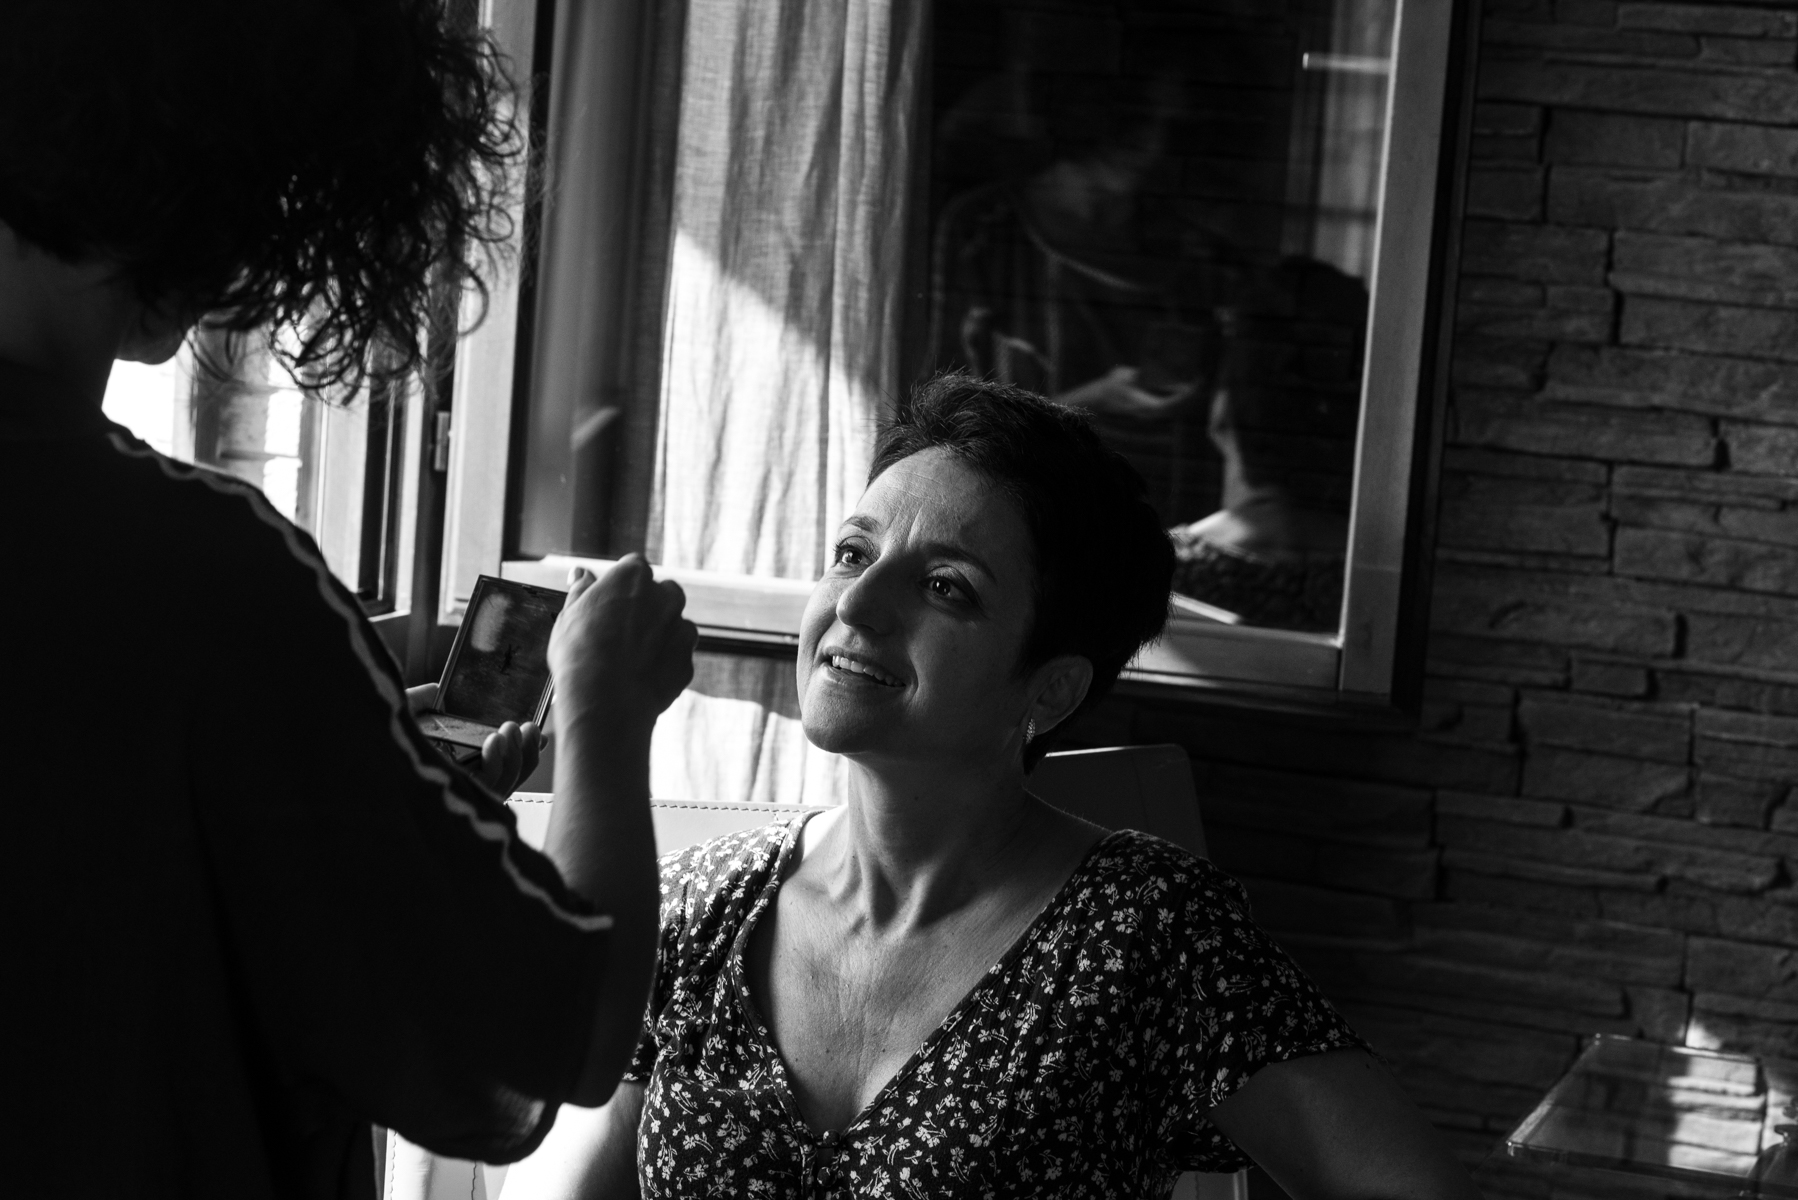 Avezzano - L'Aquila - Italy Elopement Prep Image | The bride, who usually does not use make-up products, listens to her sister-in-law's advice